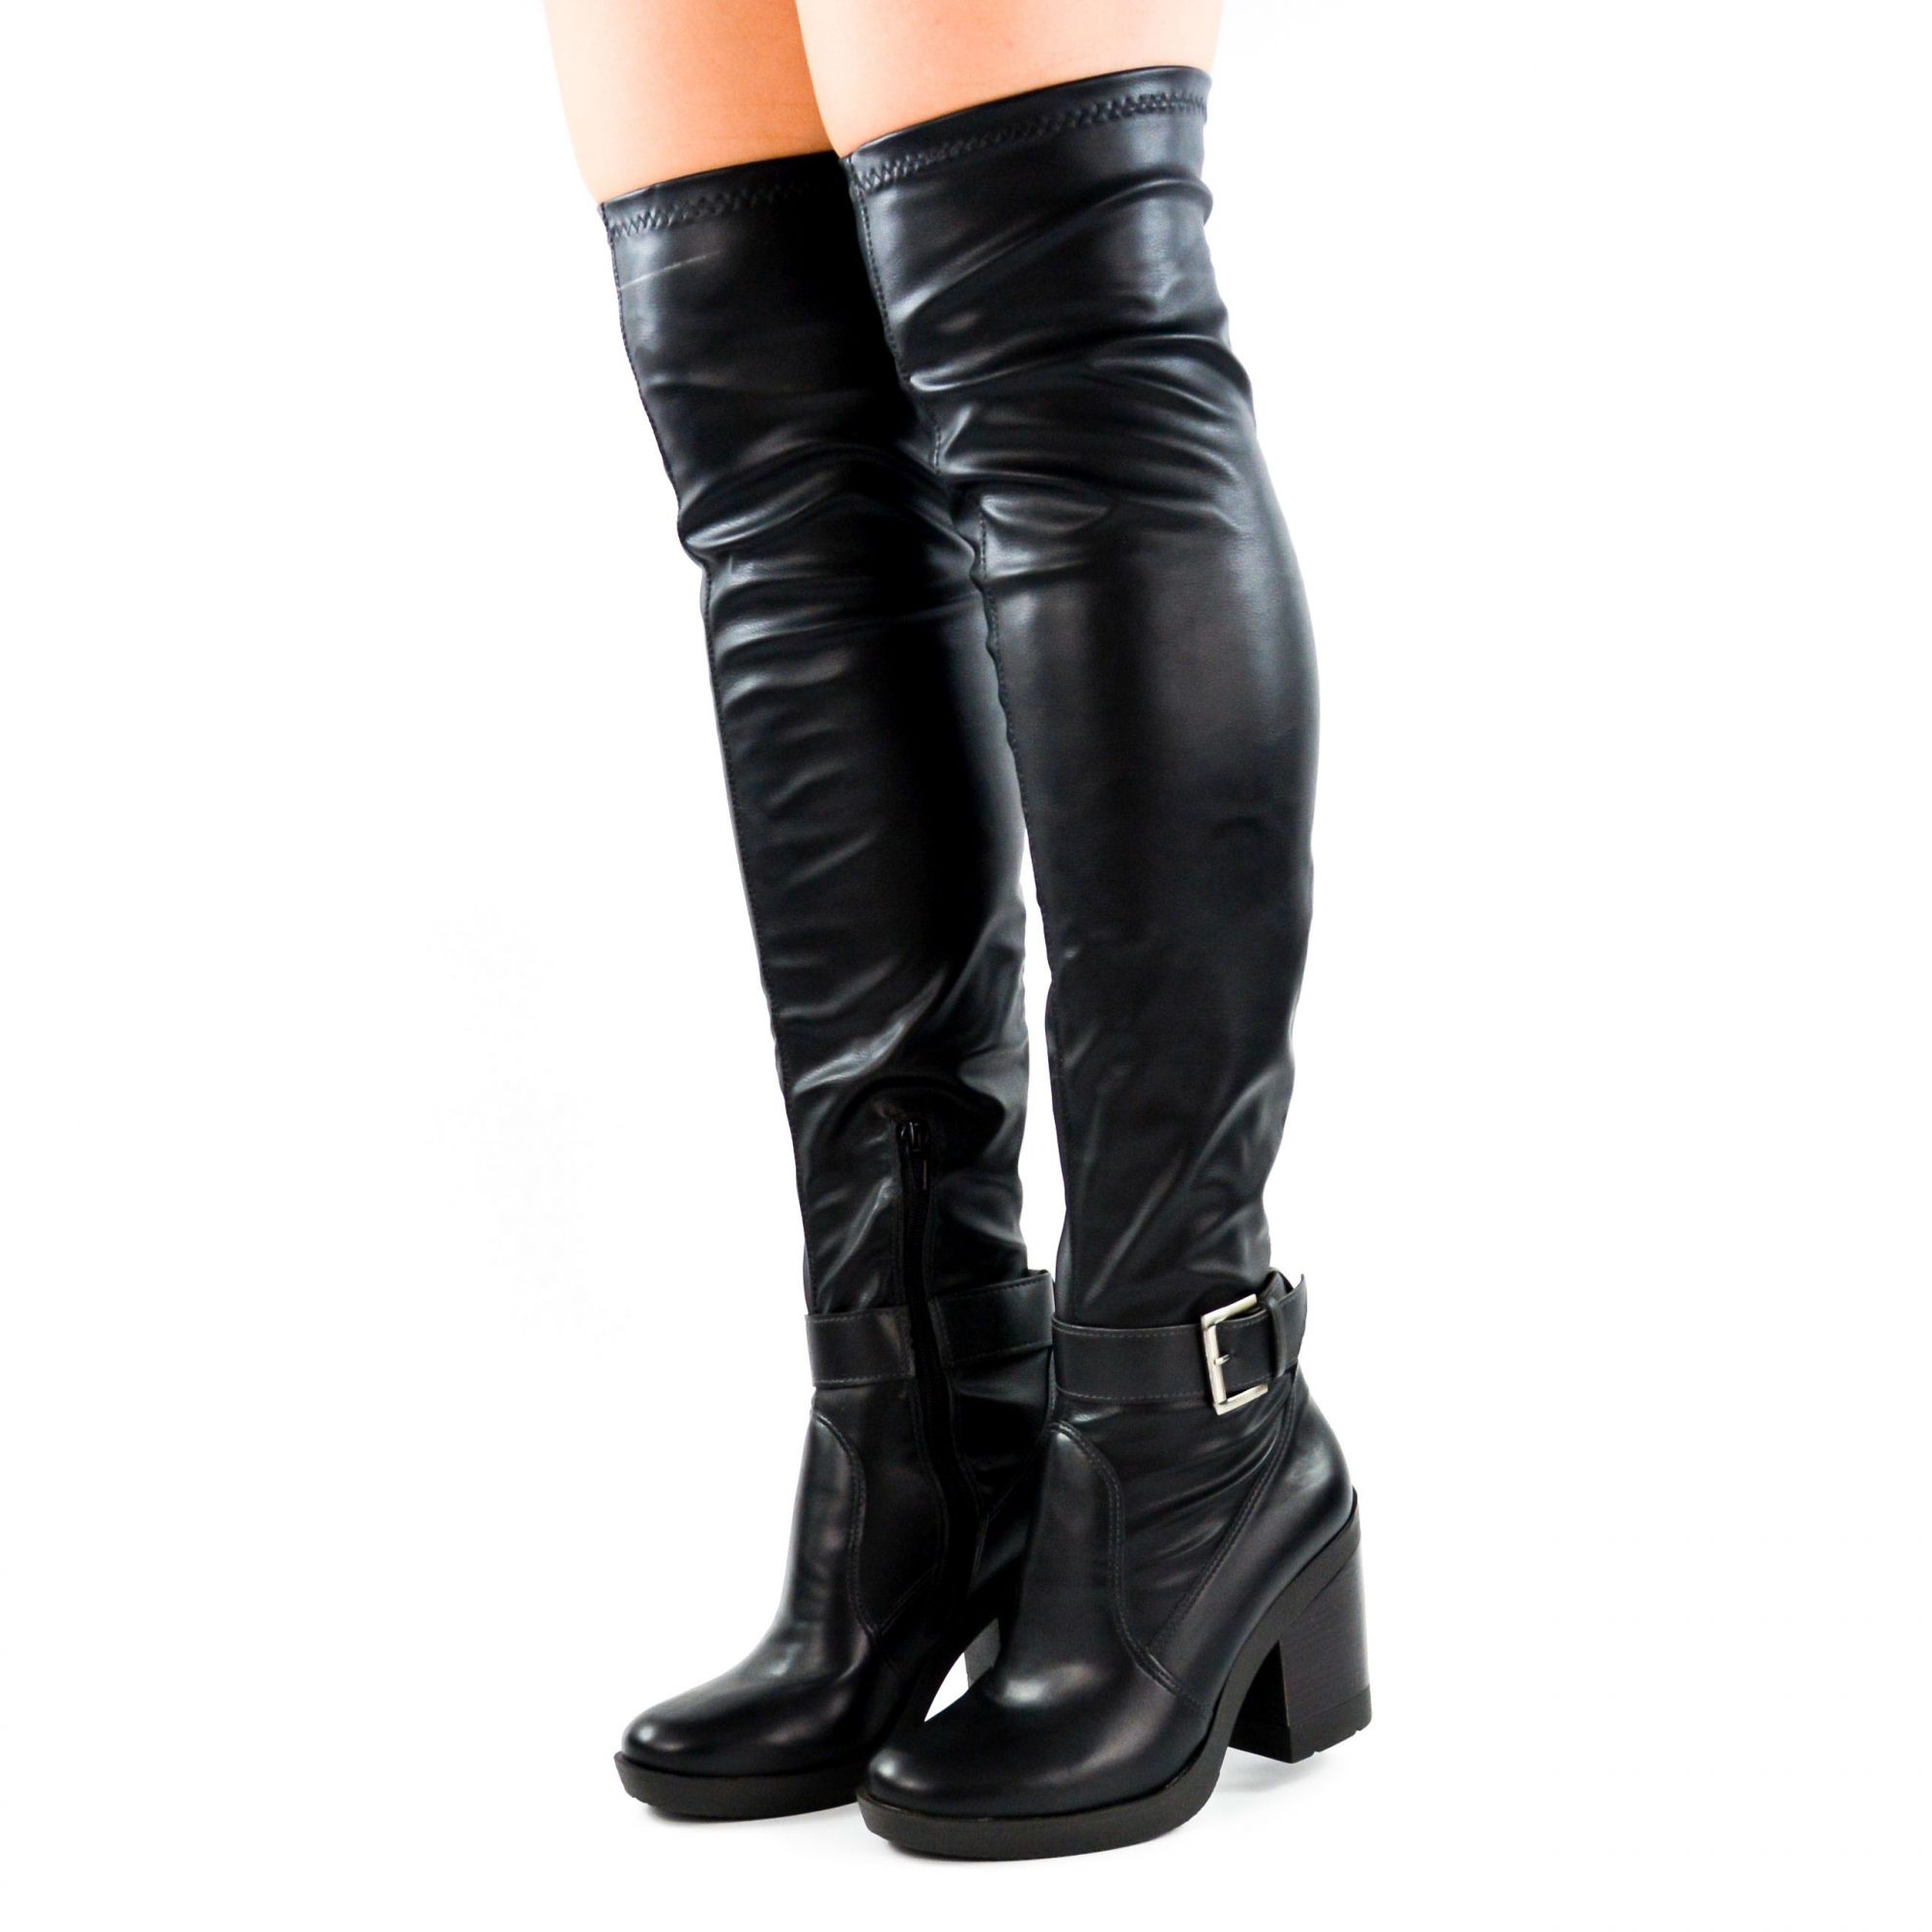 BOTA OVER THE KNEE CRYSALIS 30394804 - 11503